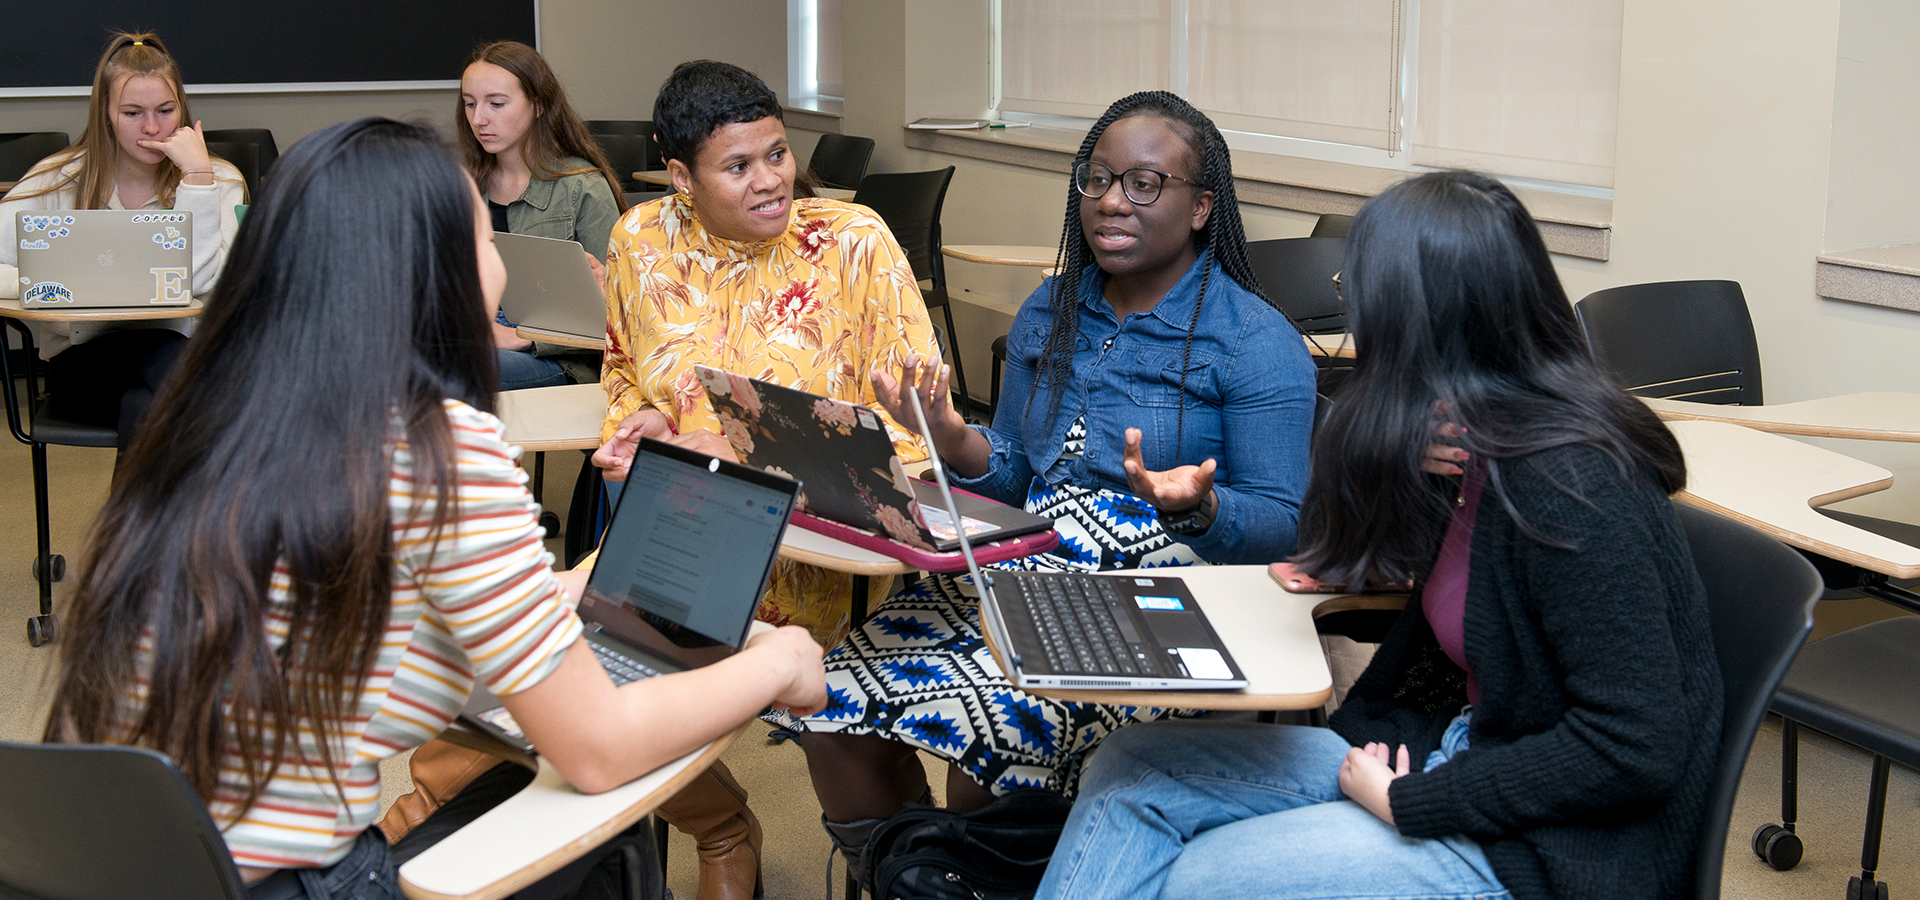 Janine de Novais speaks with students in her racial literacy class